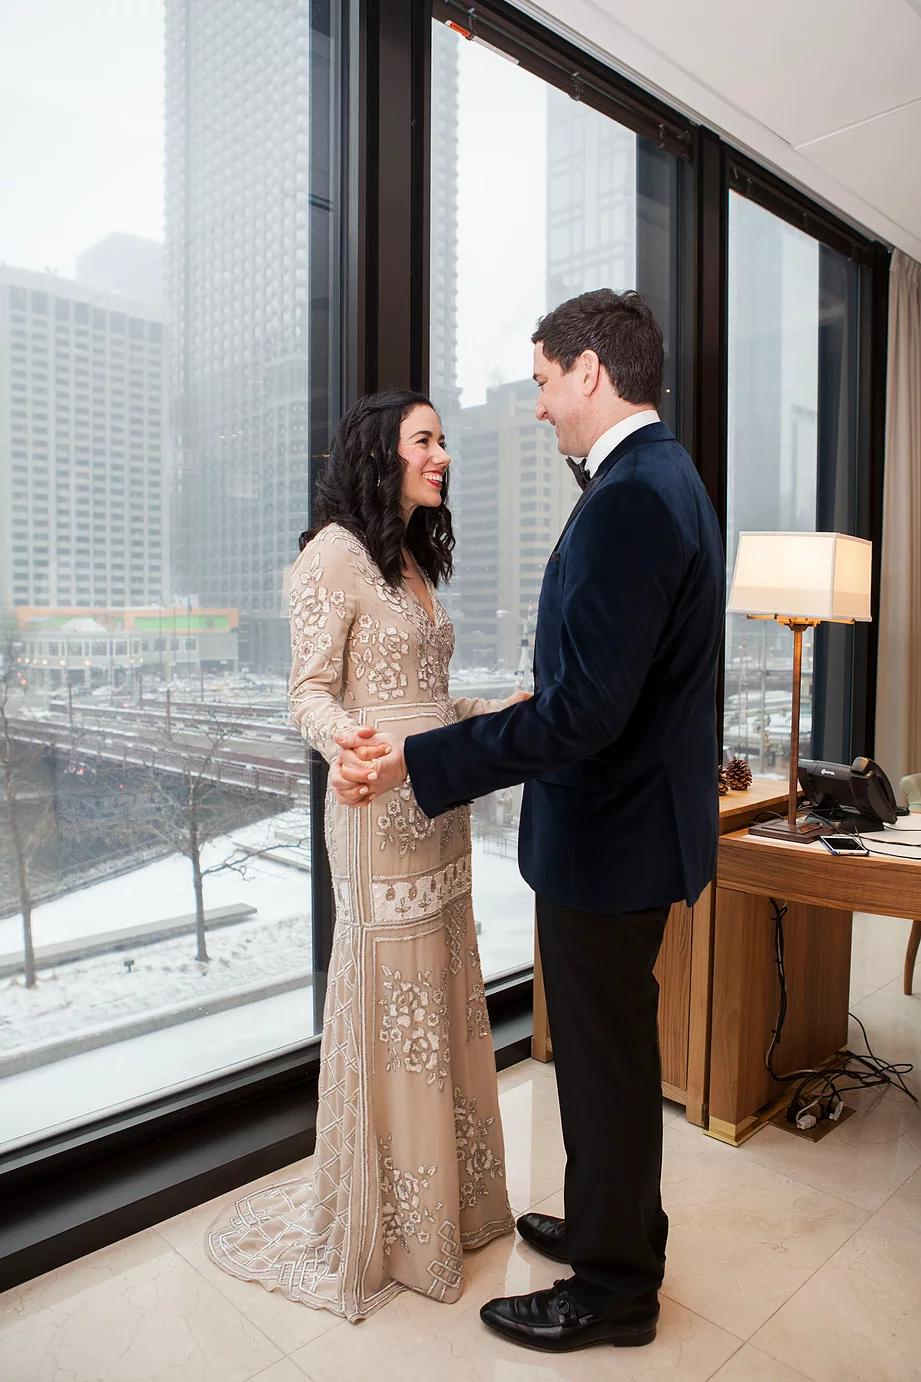 How to Find the Right Chicago Wedding Photographer